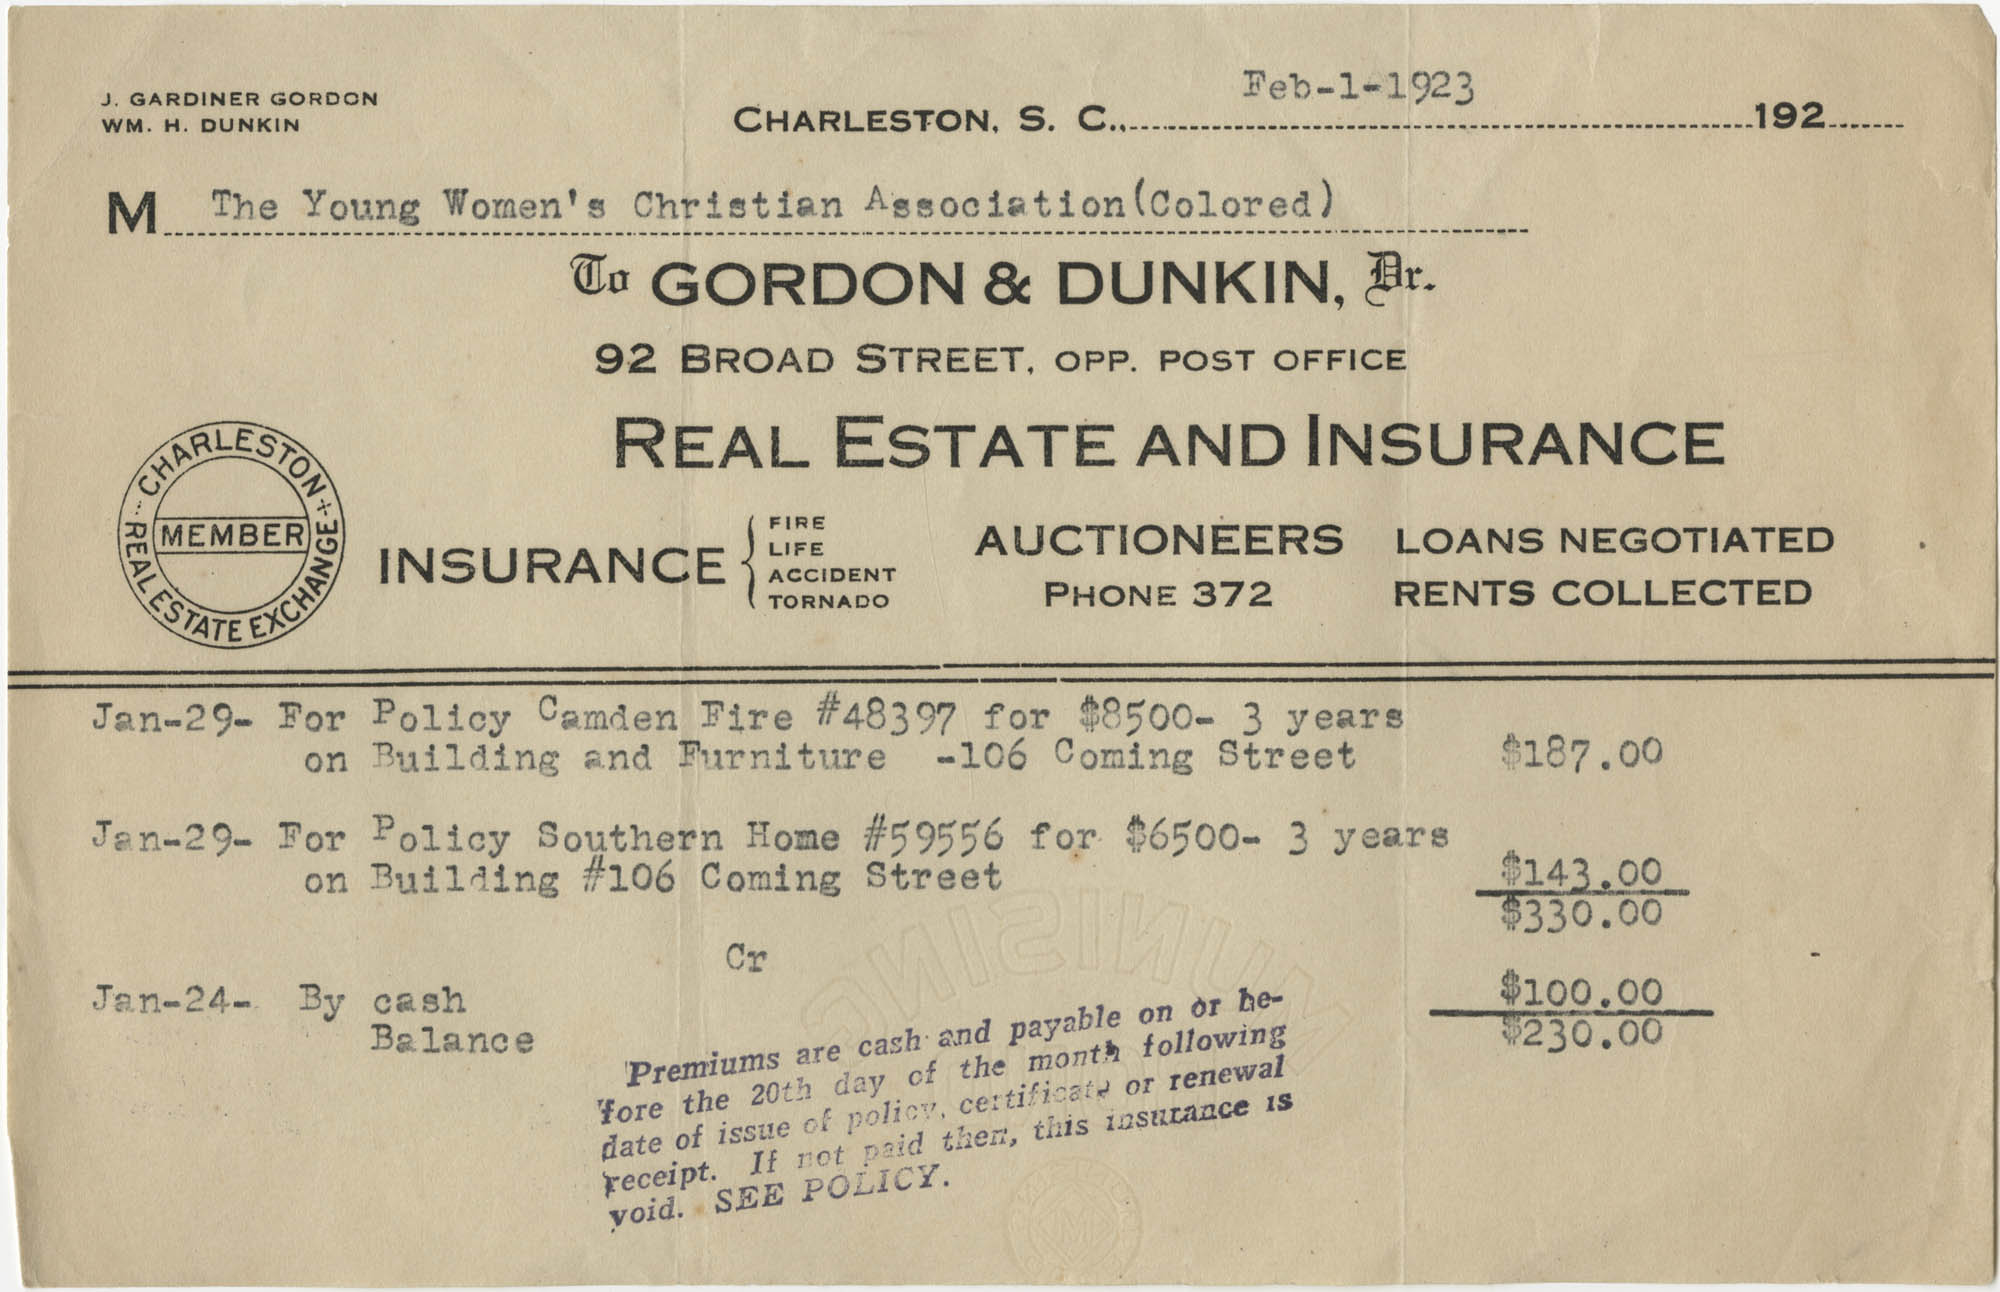 Insurance Statement, The Young Women's Colored Christian Association of Charleston, S. C., February 1, 1923